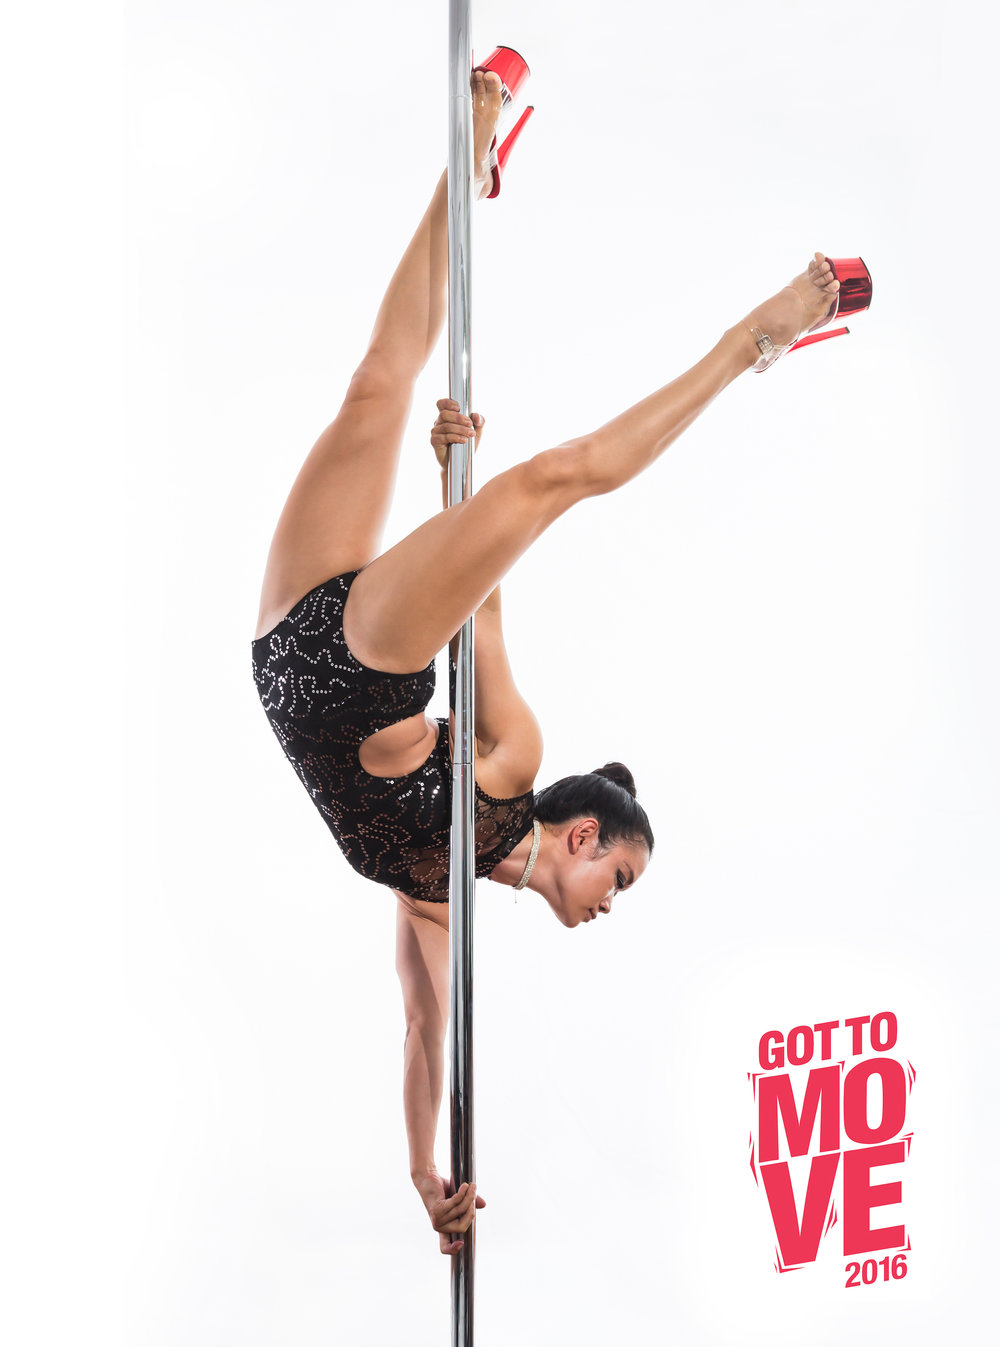 Miss Pole Dance South East Asia, Naoko Enomoto